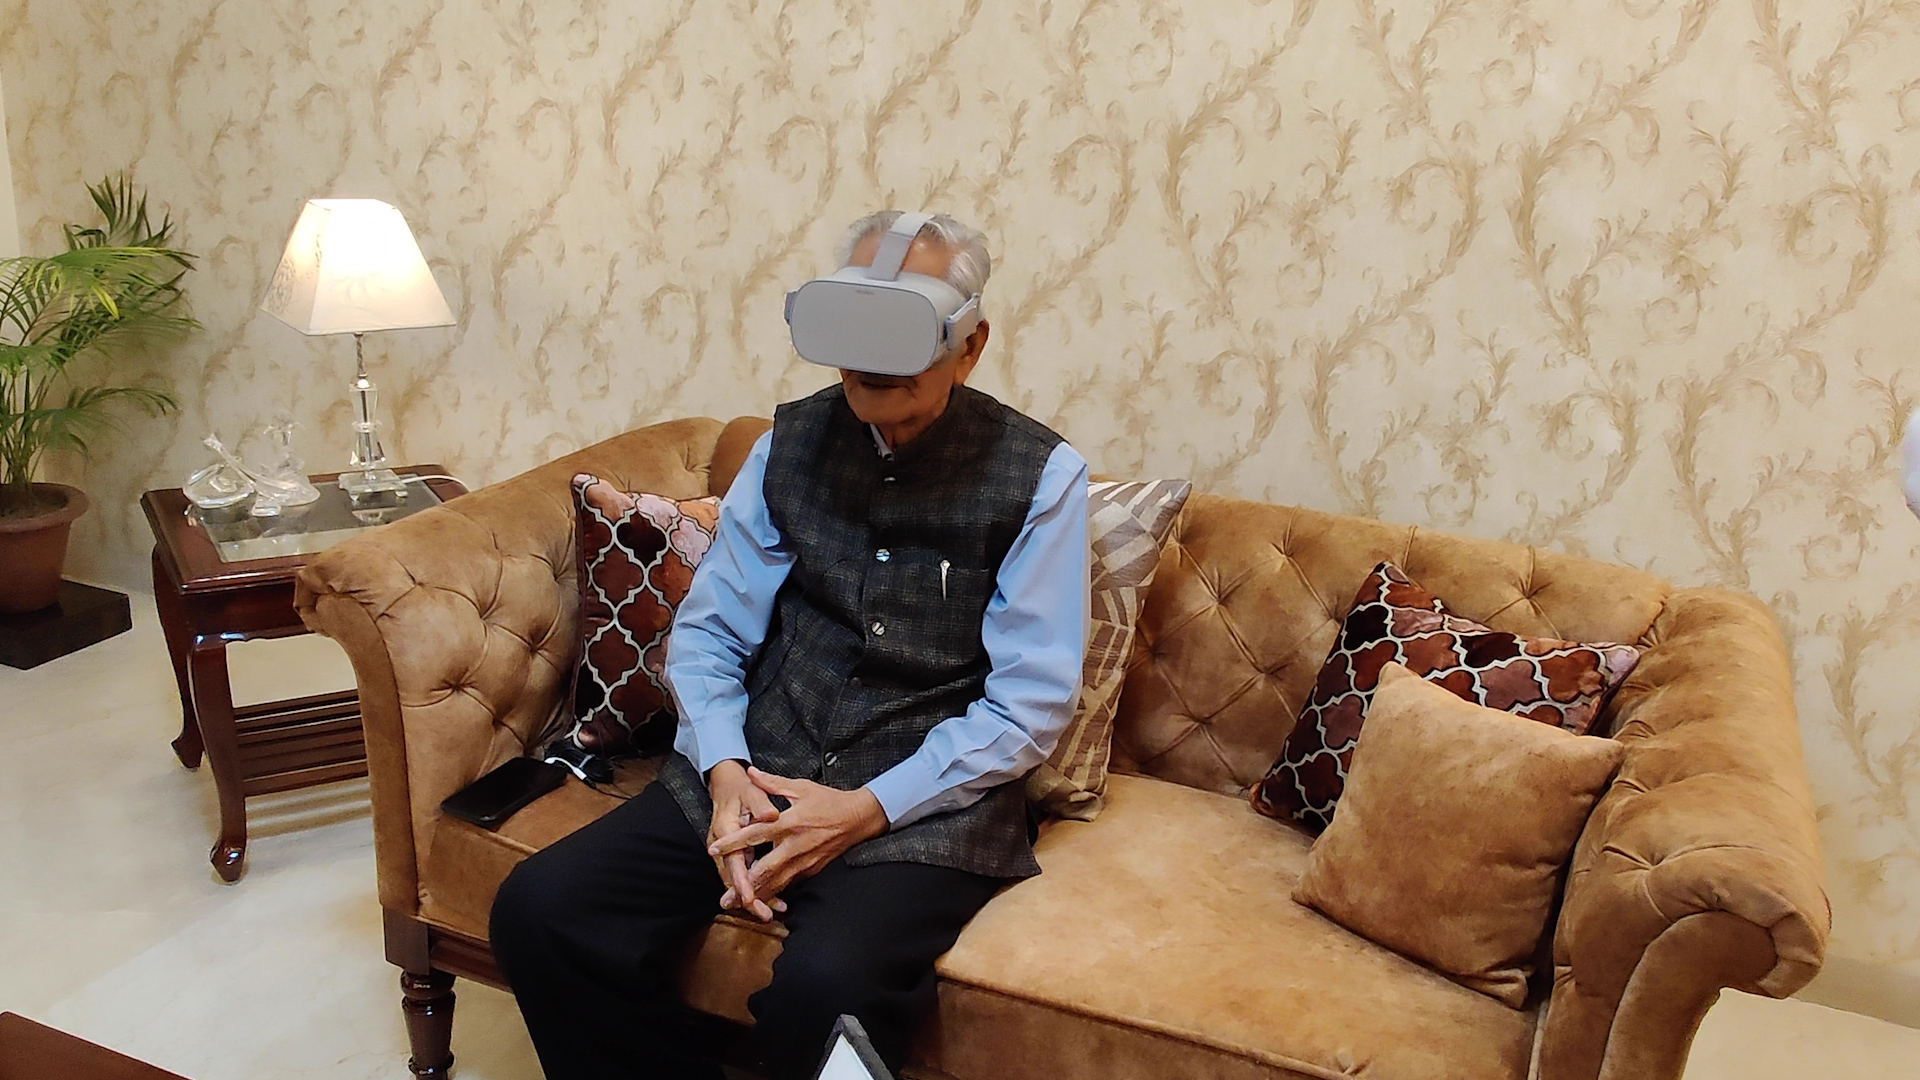 Hari Krishan Lal Anand, 90, wears a virtual reality (VR) headset to tour his hometown in Pakistan, which he fled during the Partition of British India. Anand was able to see his village for the first time in more than 70 years thanks to a VR experience recorded and produced by the nonprofit Project Dastaan.